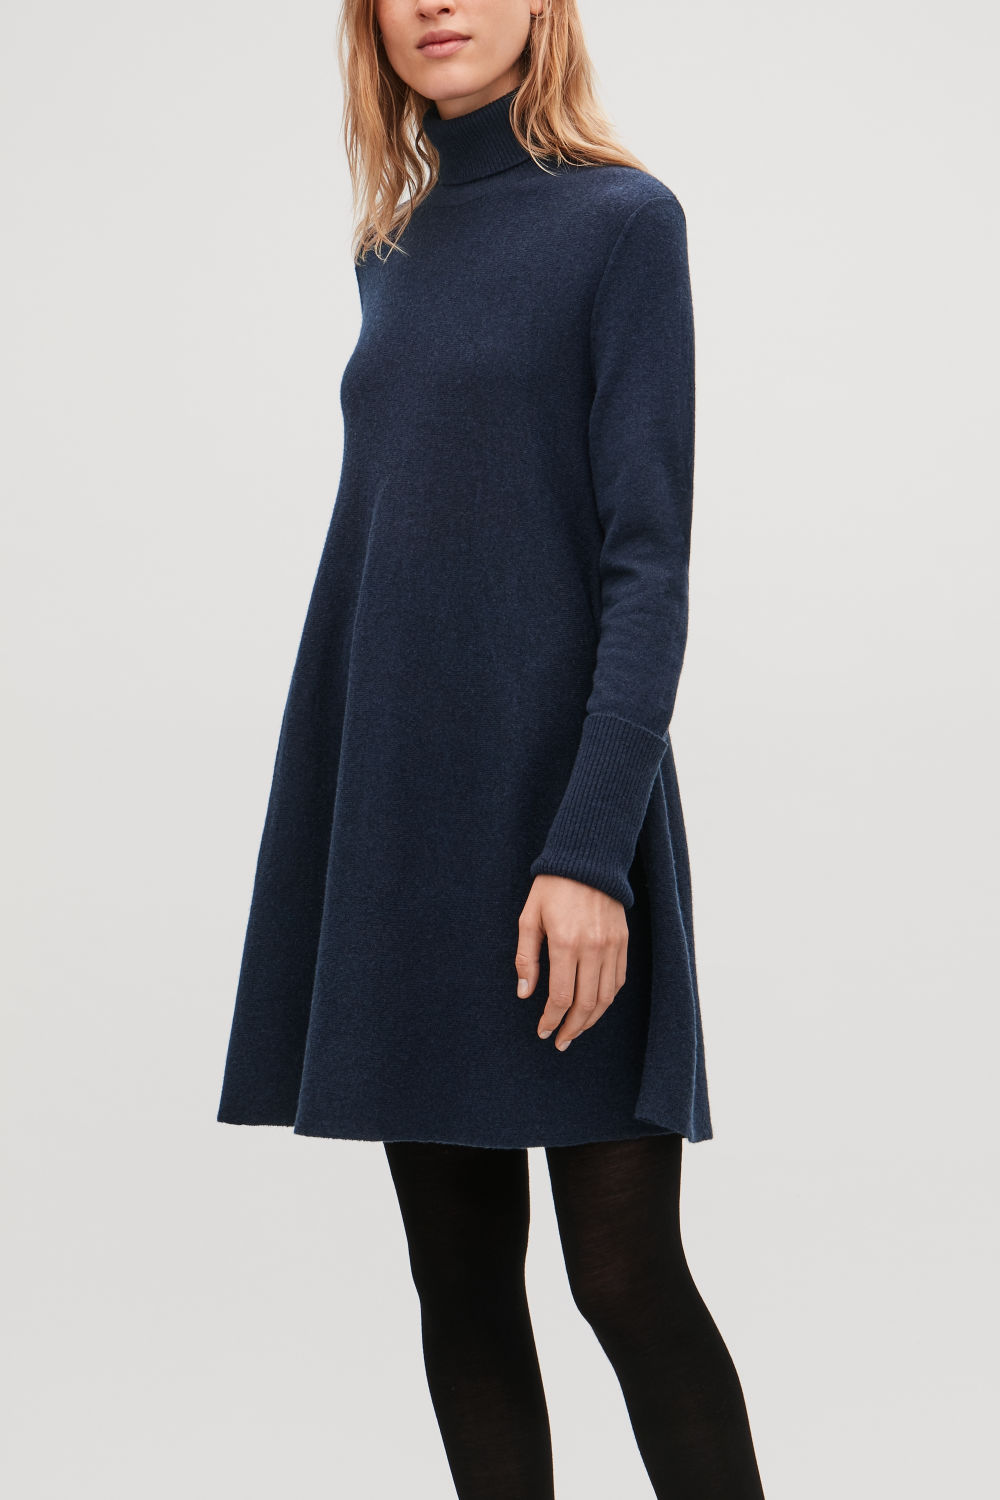 LAMBSWOOL KNIT A-LINE DRESS